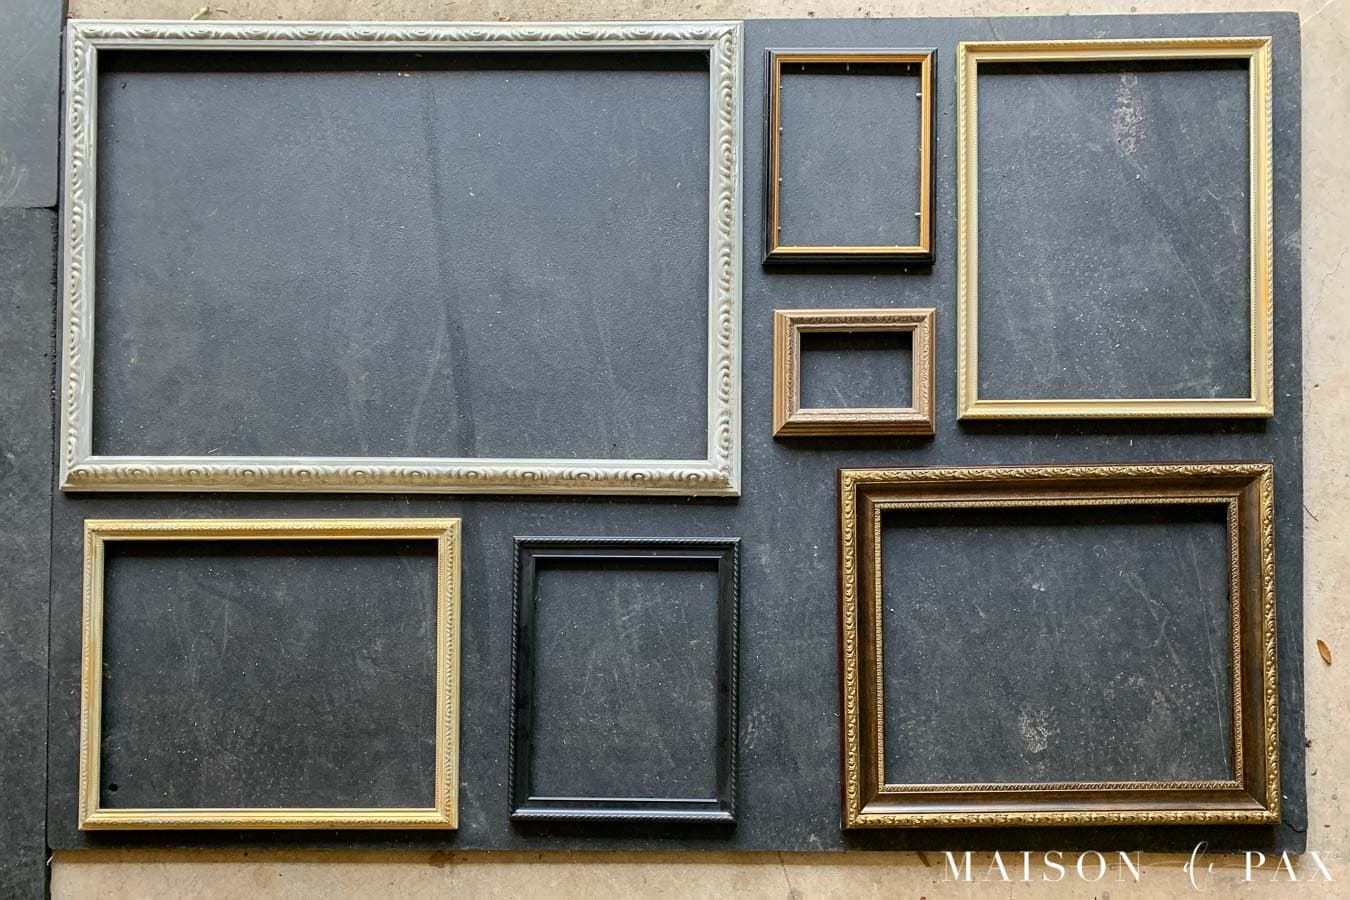 frames laid out in gallery wall format on ground | Maison de Pax